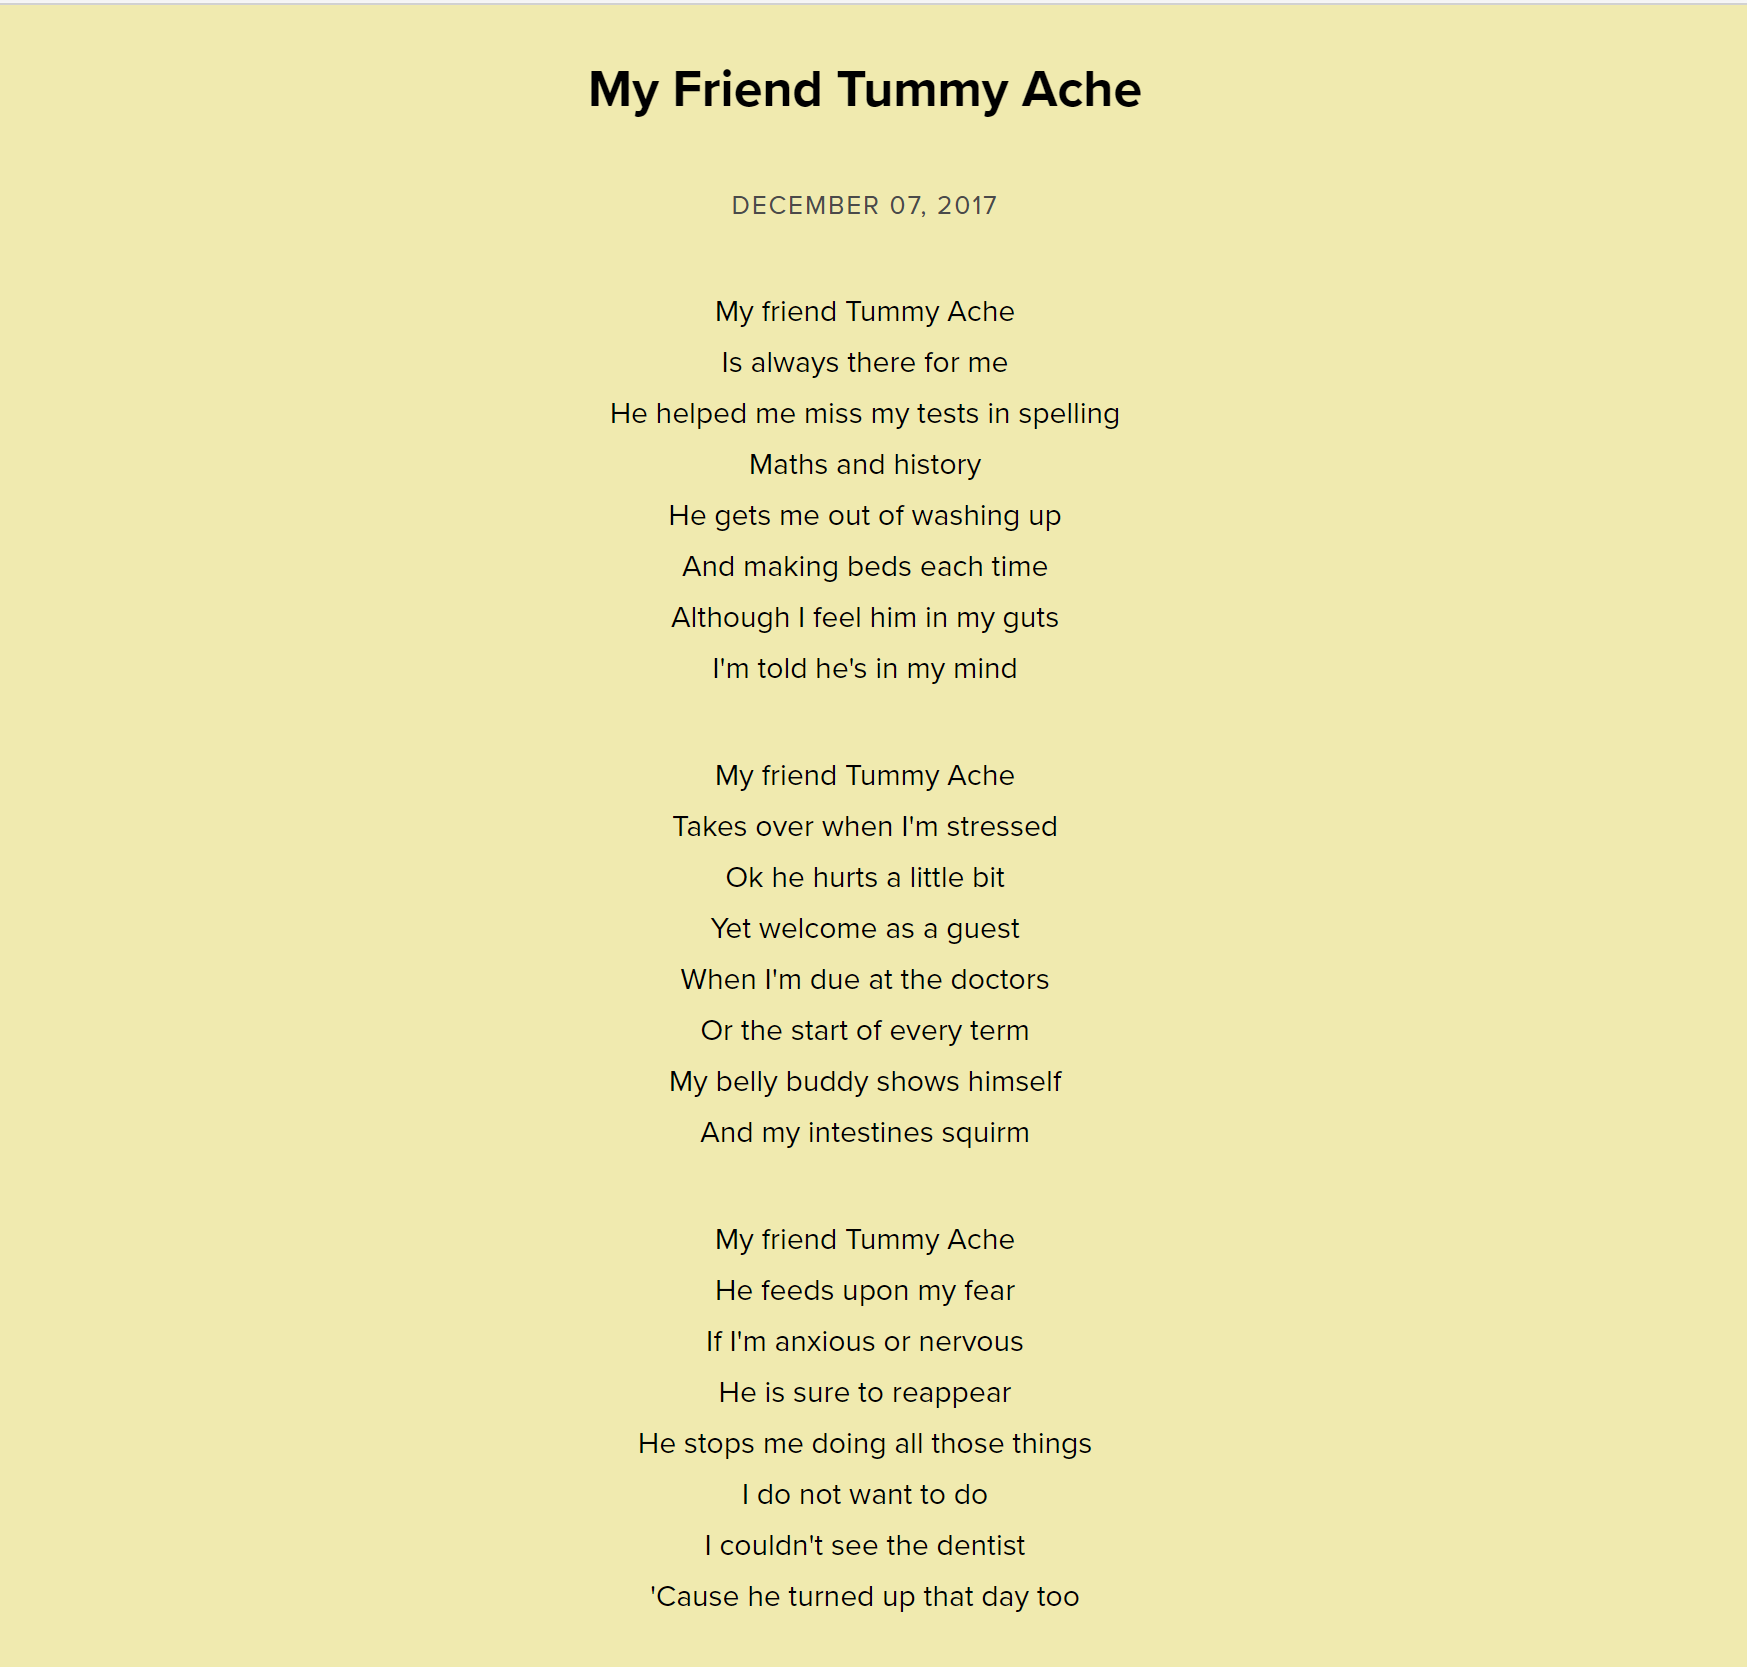 My Friend Tummy Ache by Neal Zetter